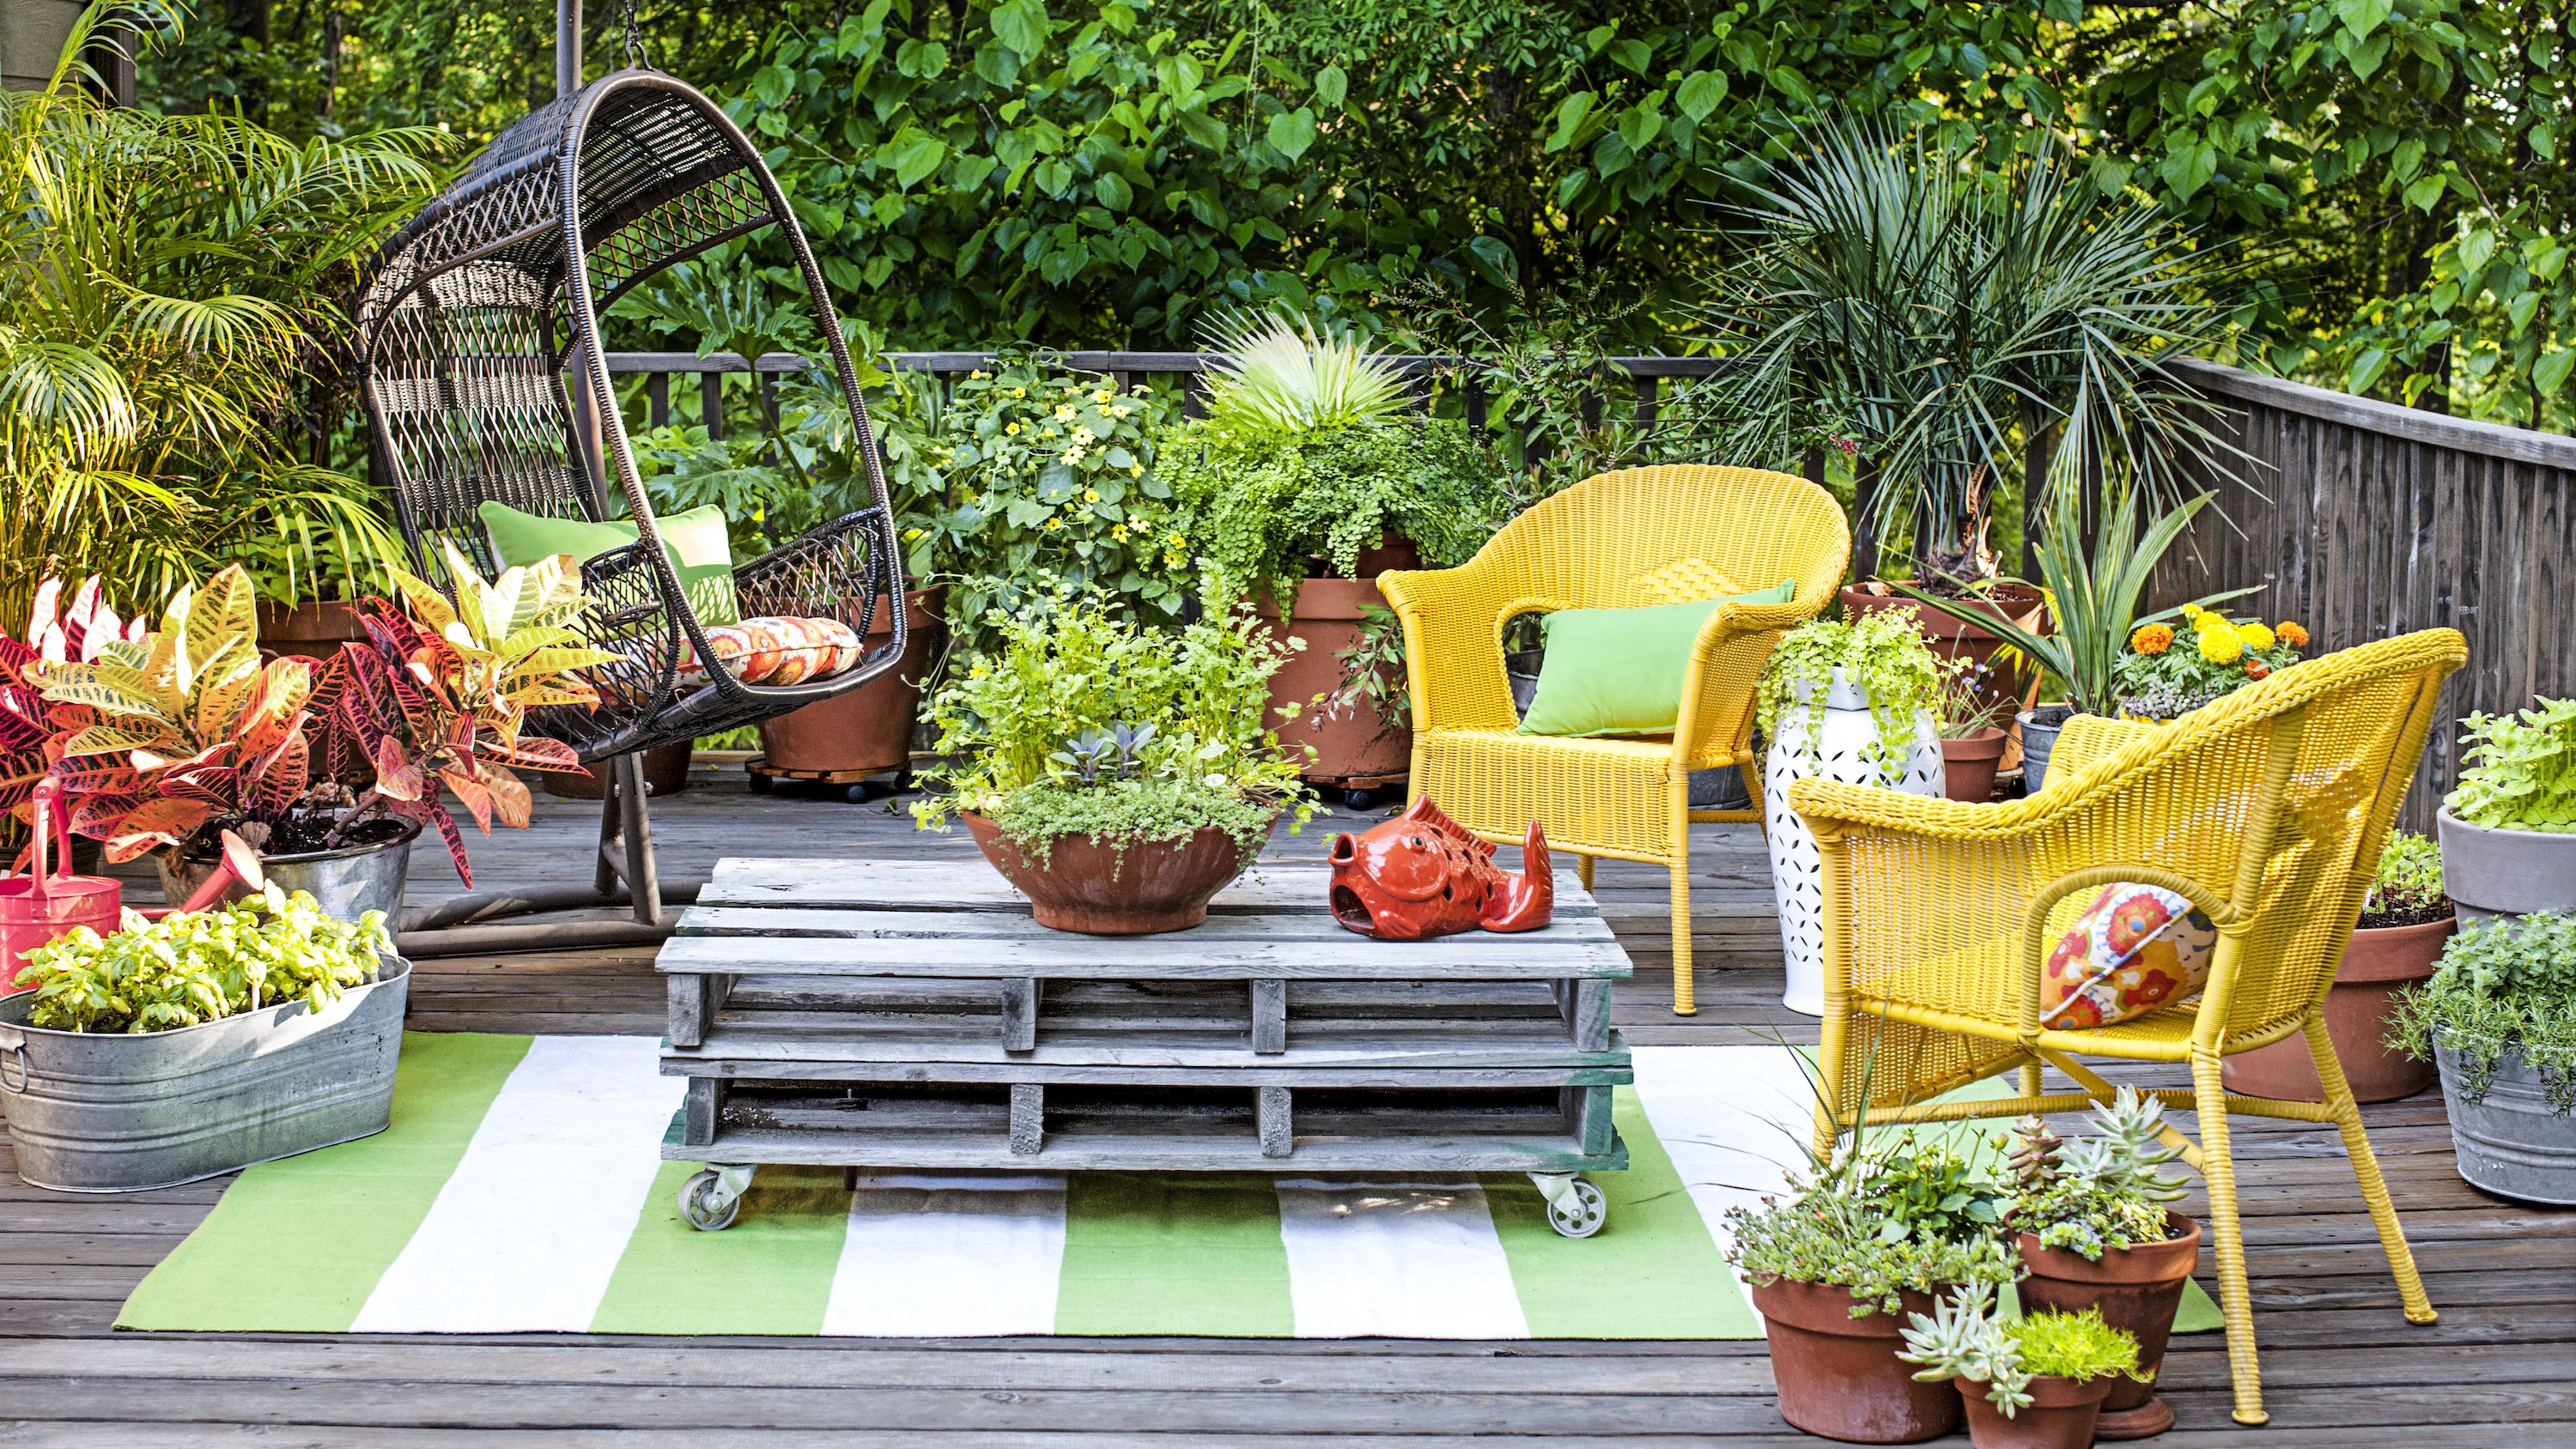 homes knows patio blog quarto privacy furnishings deck quartohomes planter and diy planters